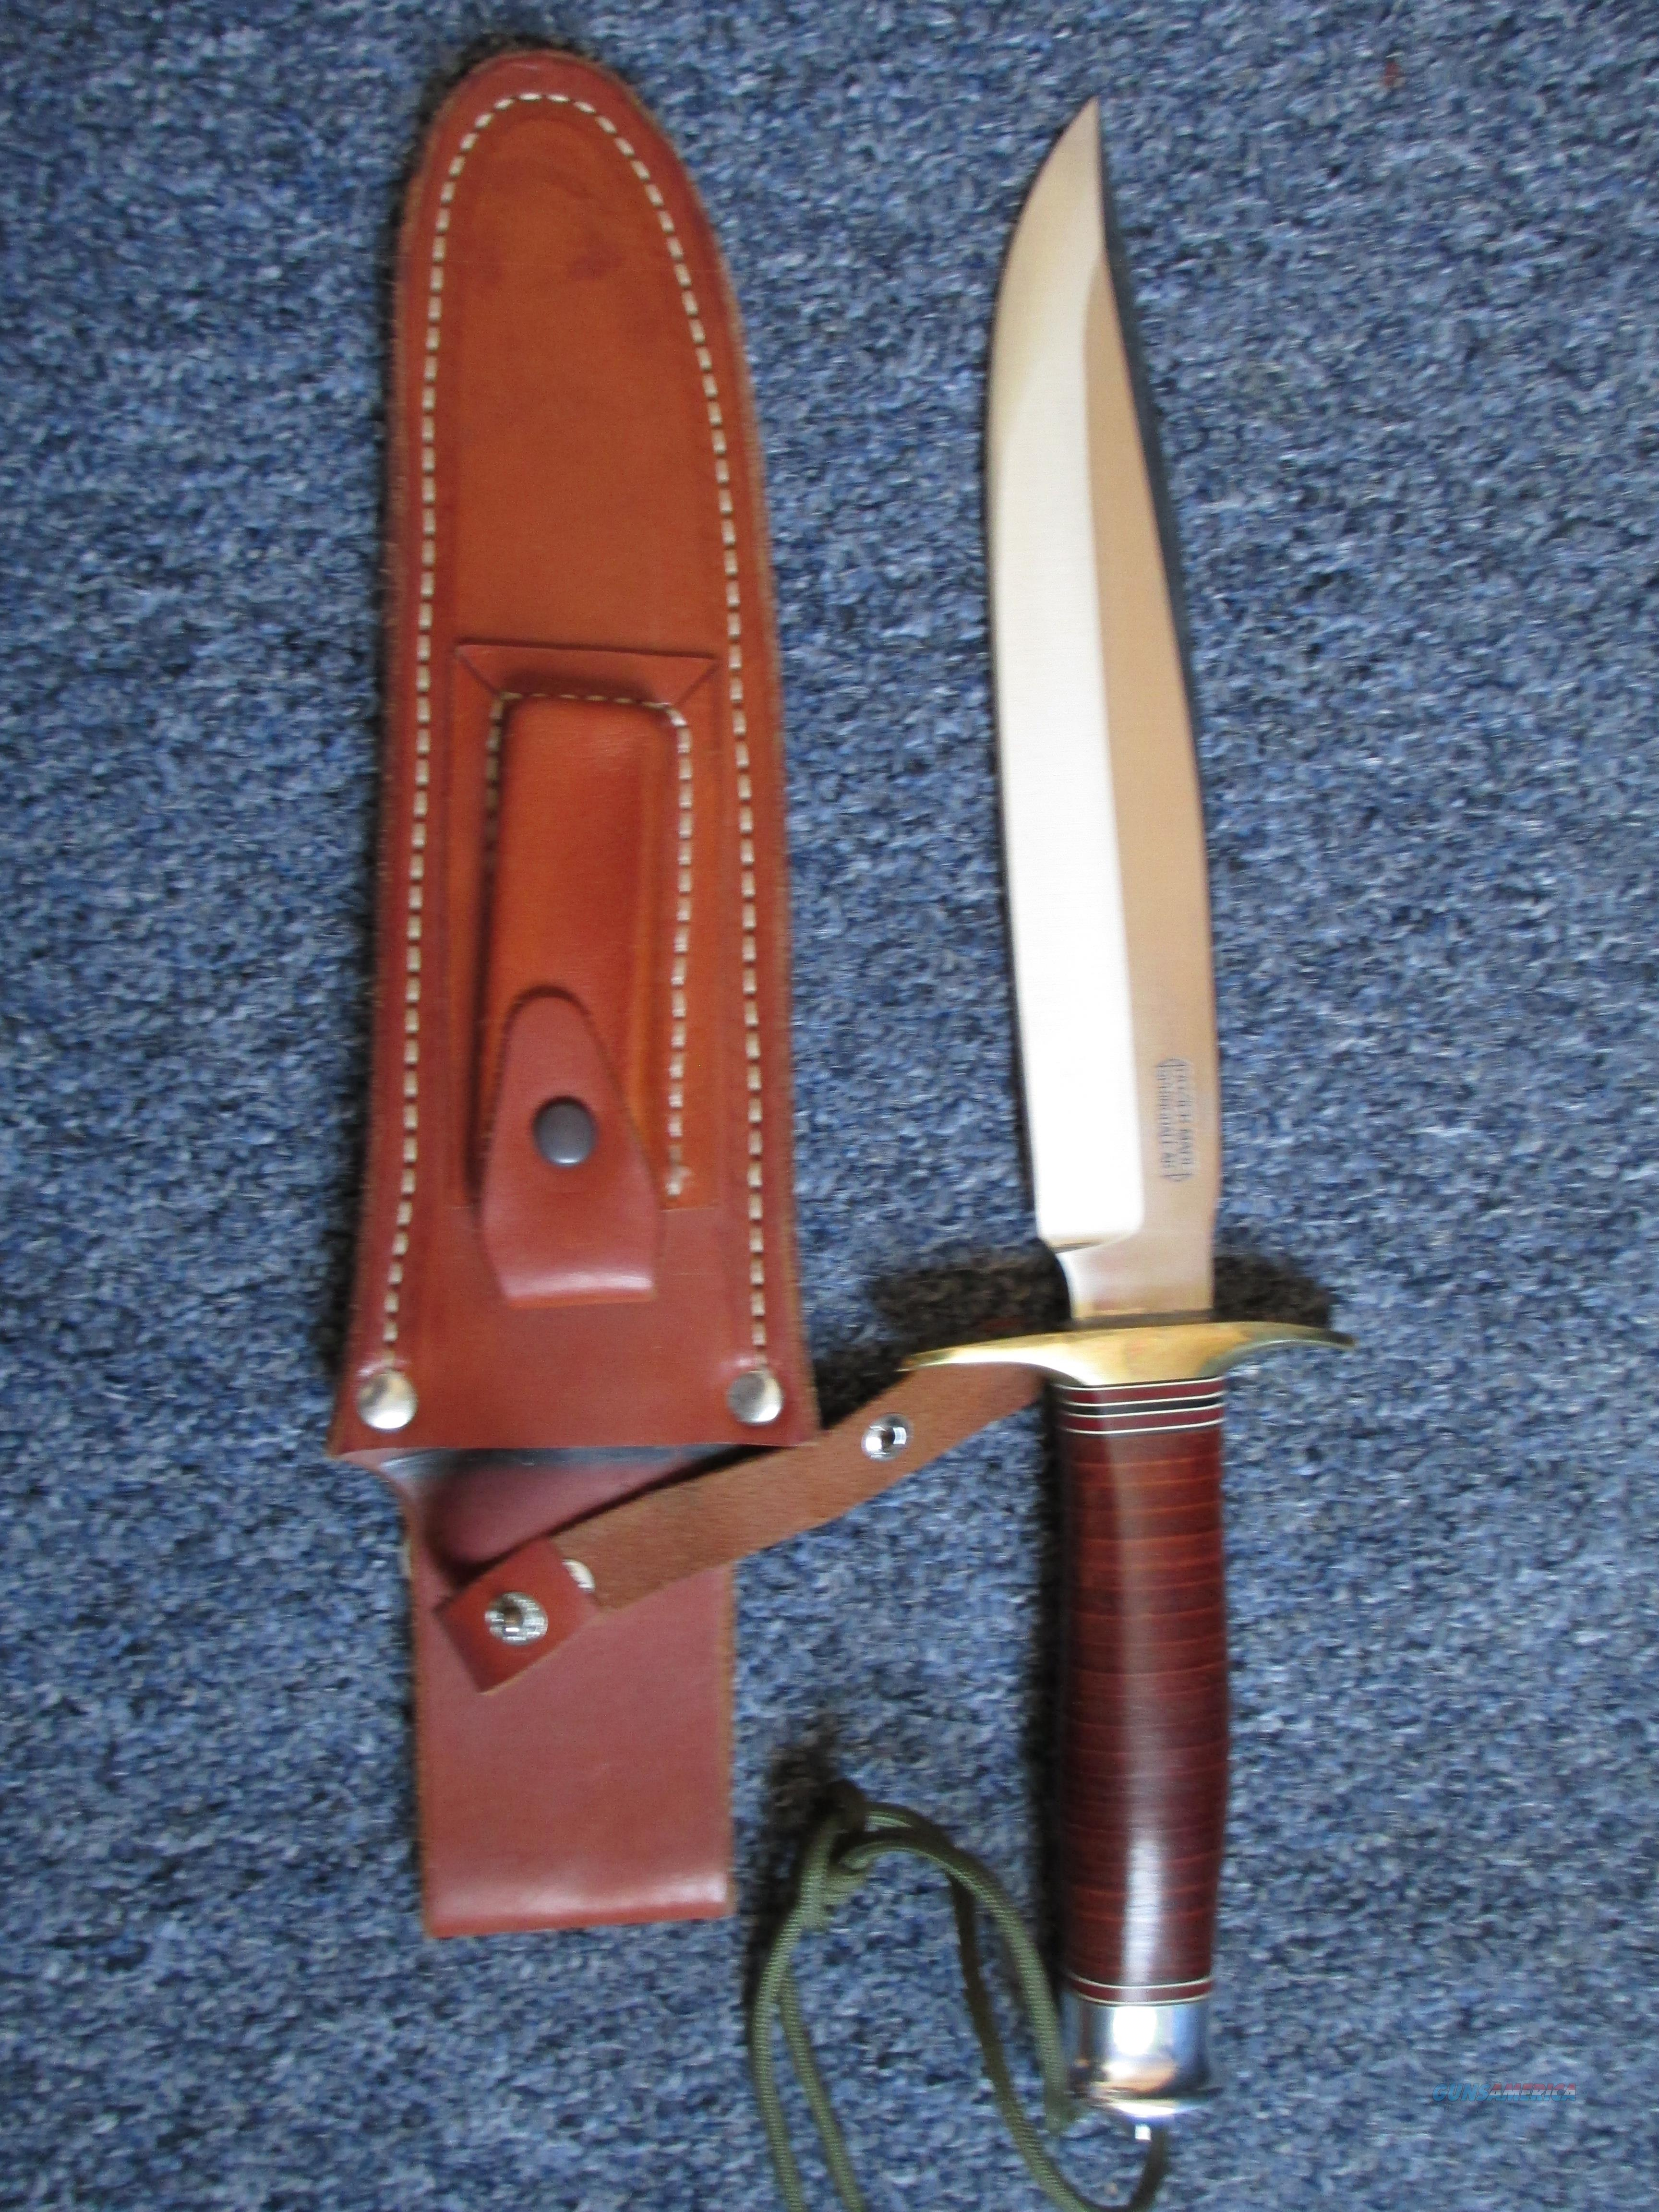 Bob dozier Springfield fighter knife  Non-Guns > Knives/Swords > Knives > Fixed Blade > Hand Made